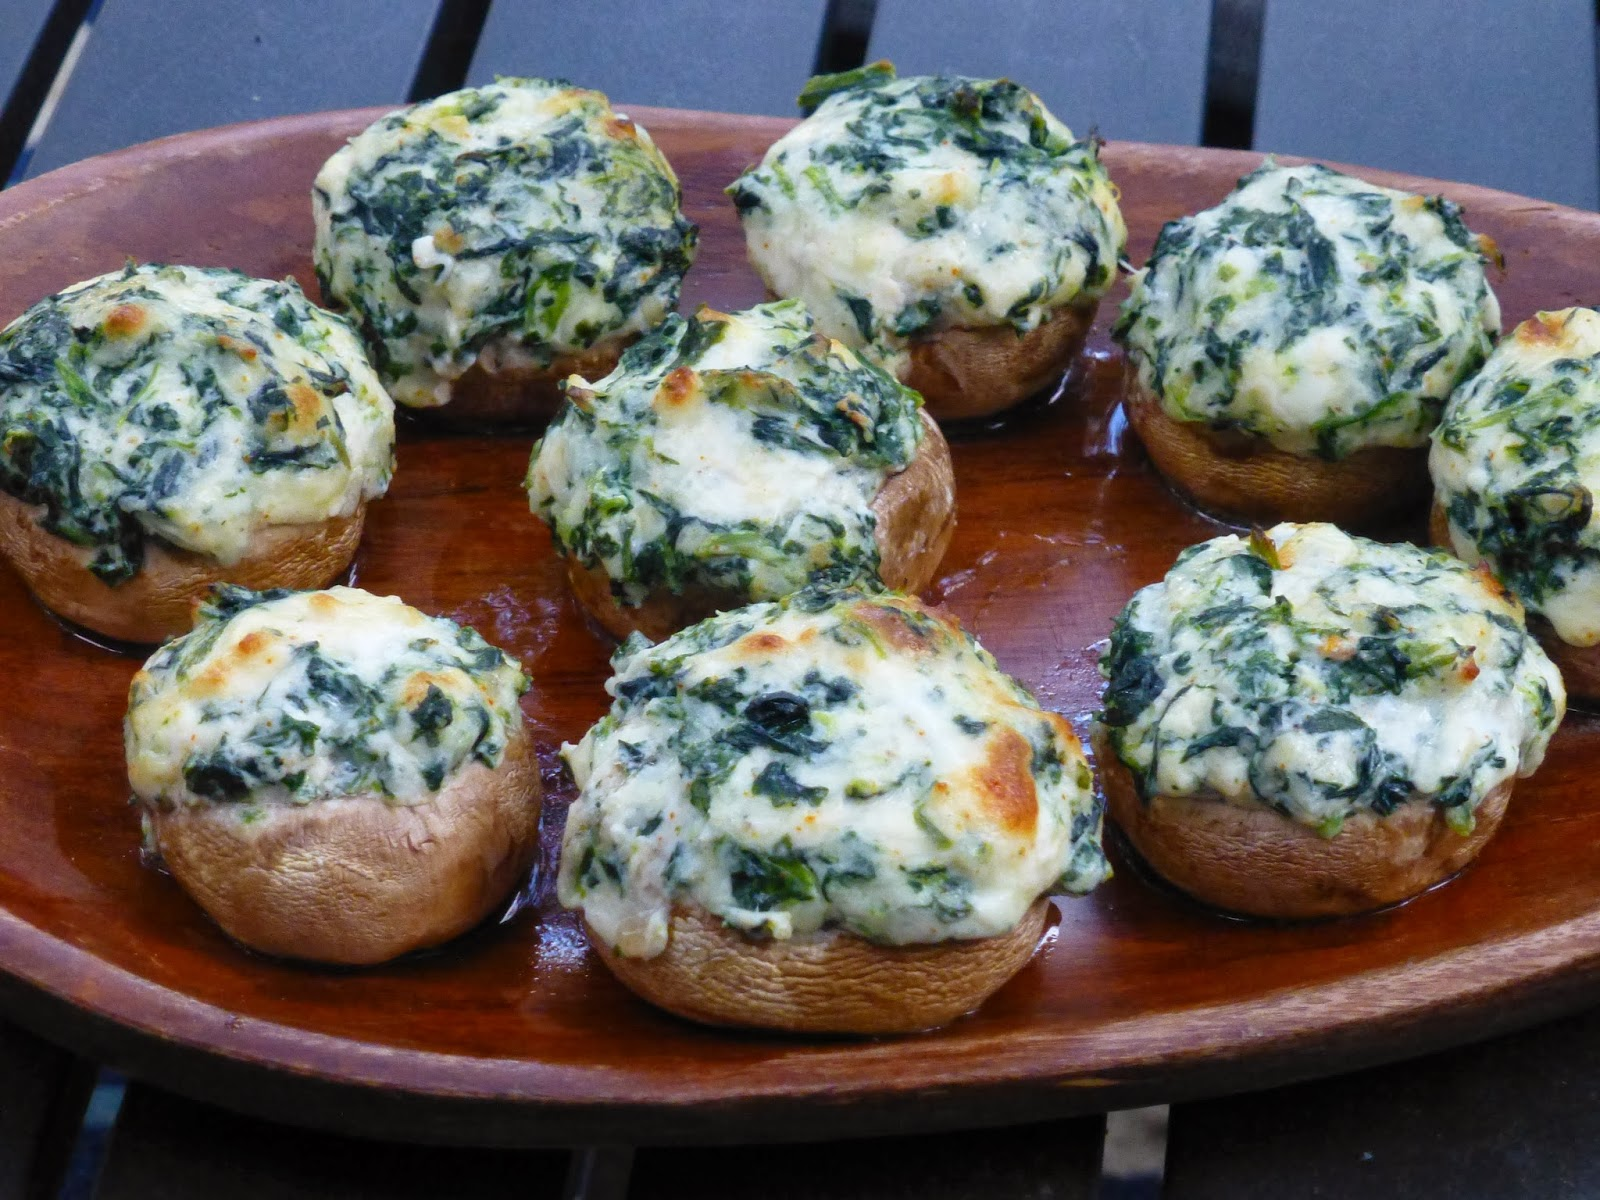 Theresa's Mixed Nuts: Spinach Dip Stuffed Mushrooms